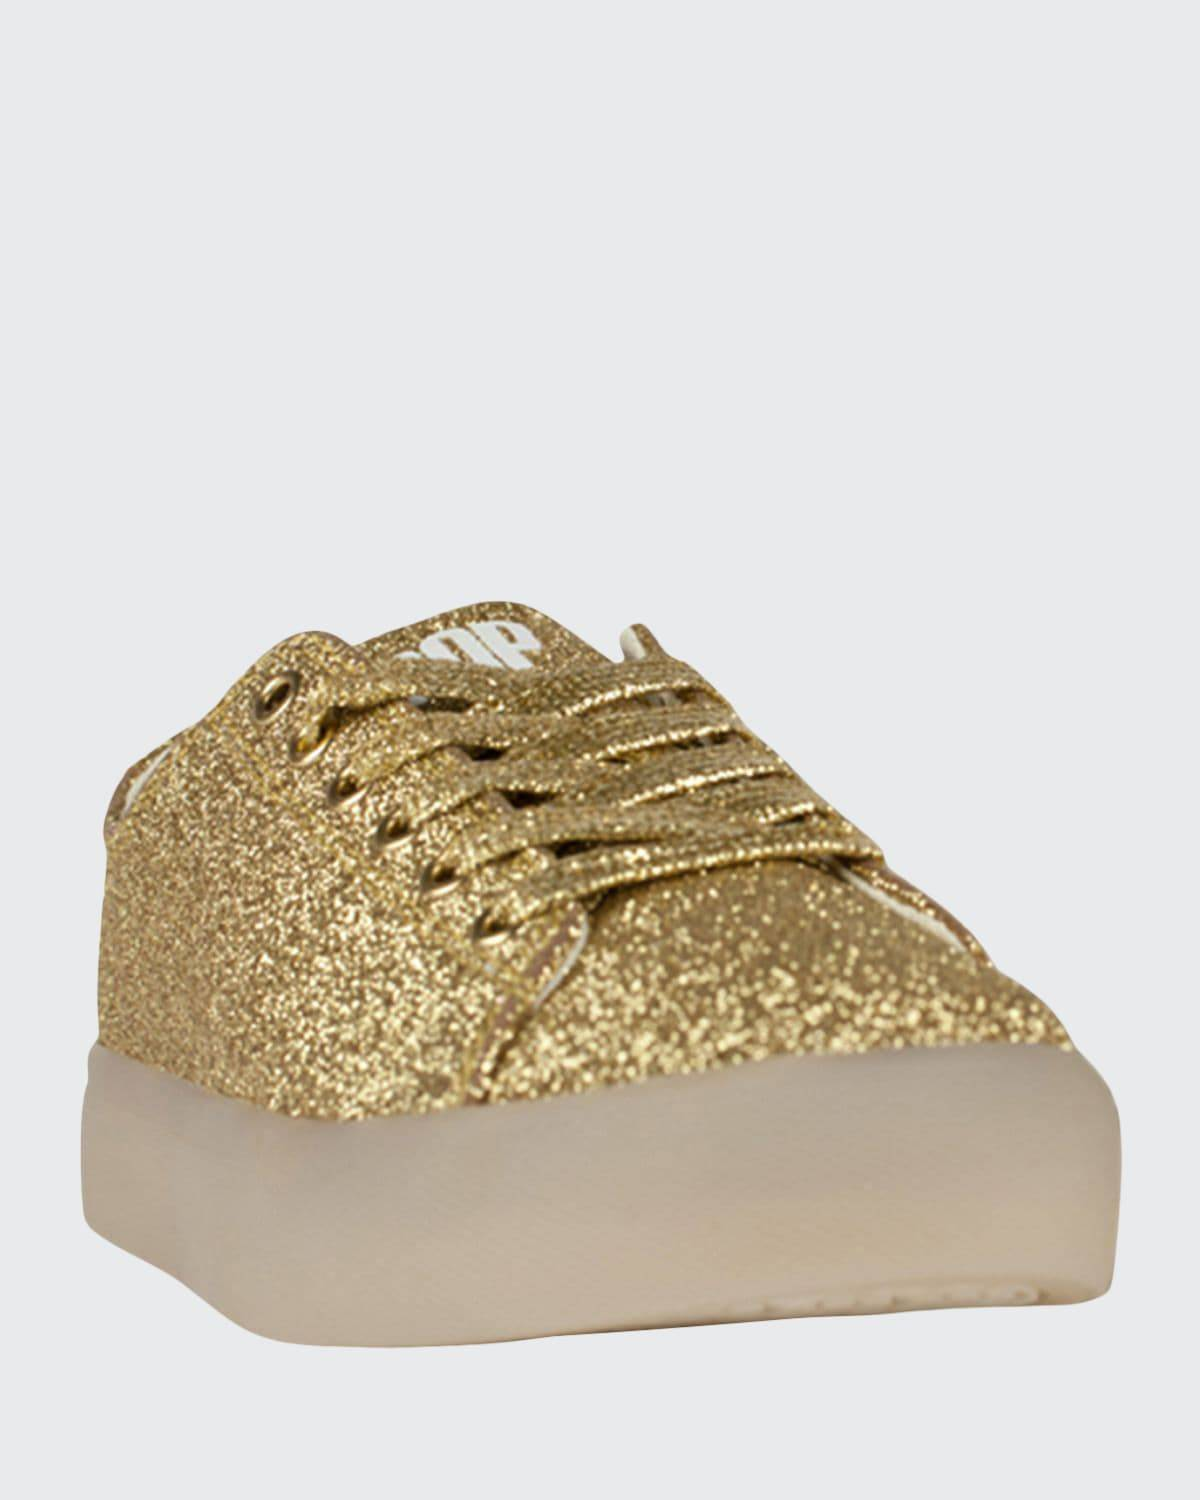 Pop Shoes EZ Glitter Light-Up Sneakers, Toddler/Kids  - GOLD - GOLD - Size: 11 Tod